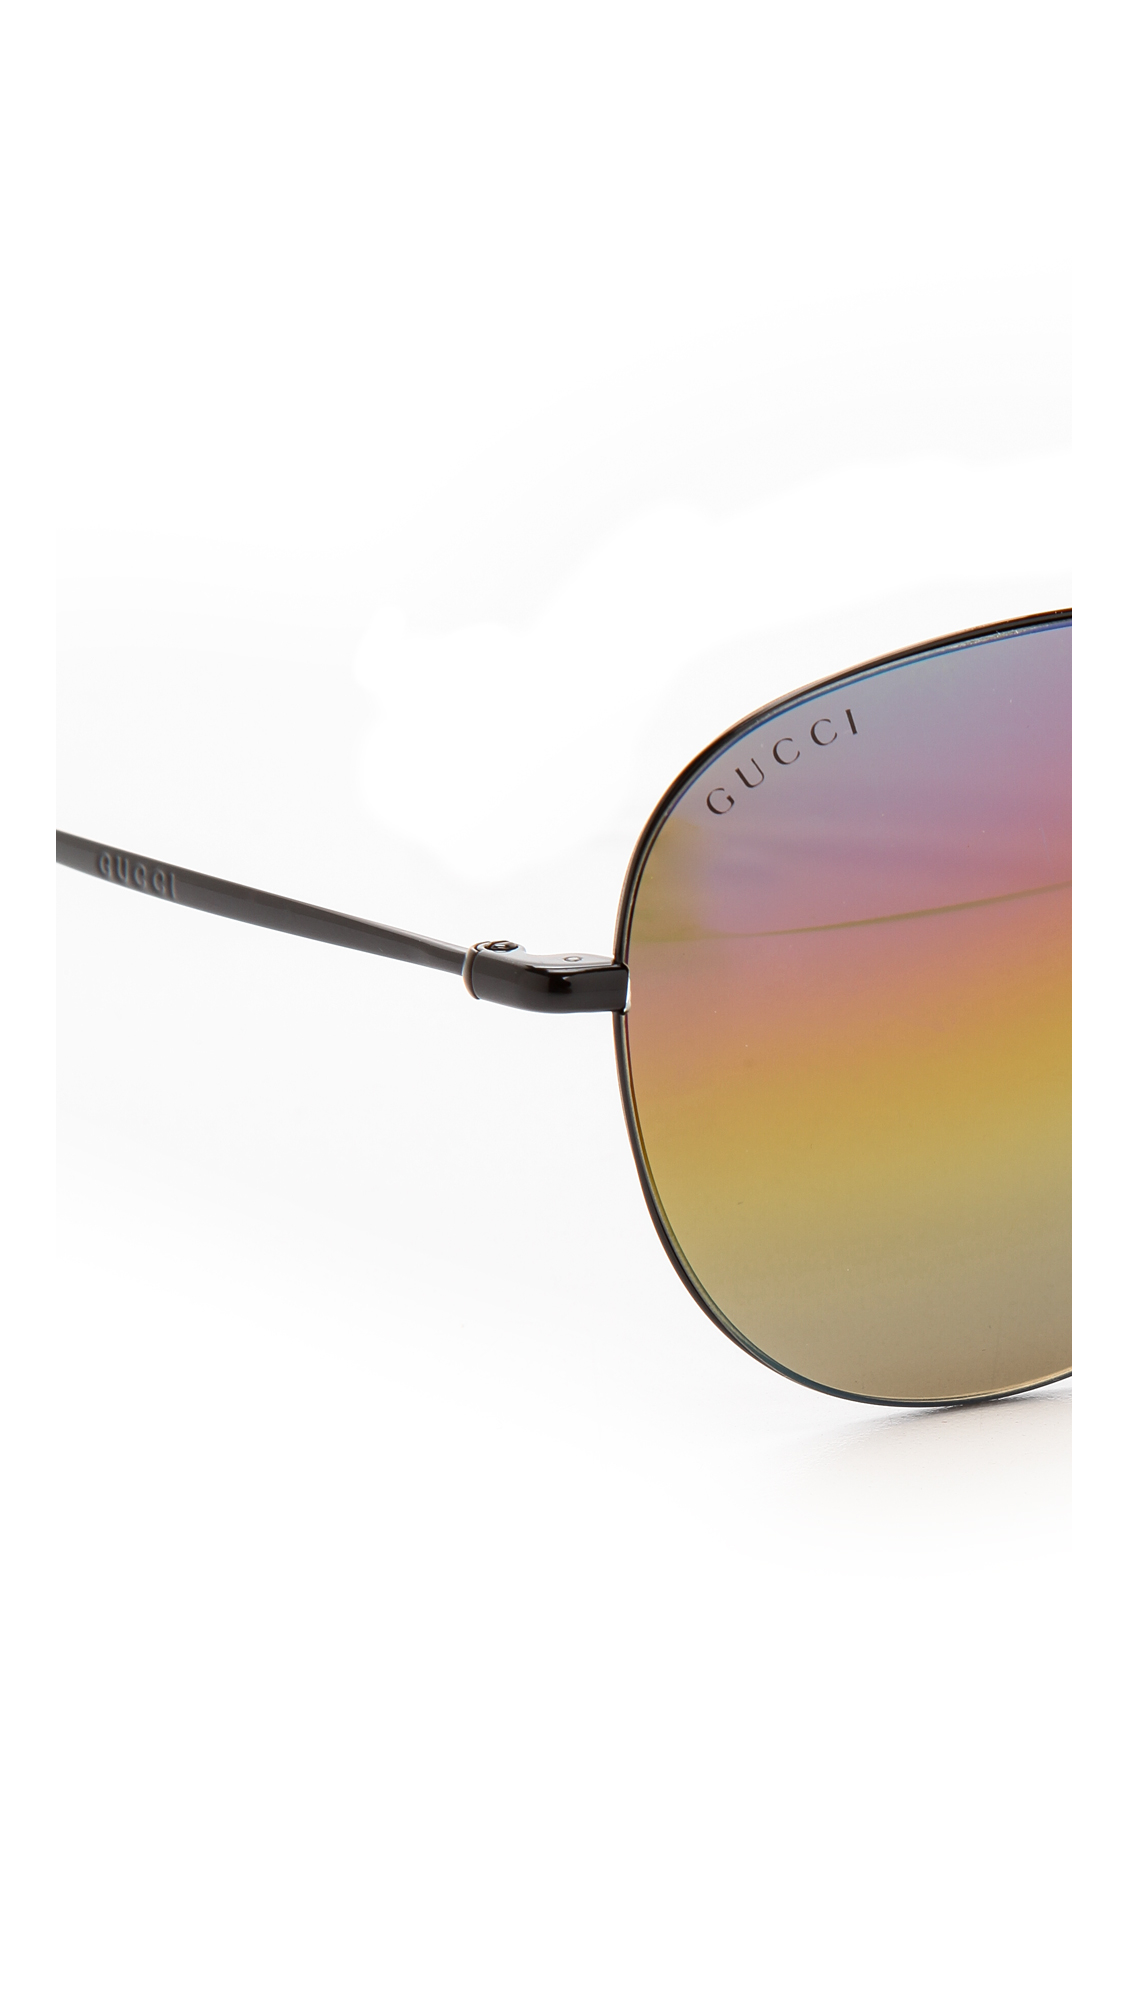 8c7ff182a88 Lyst - Gucci Rainbow Mirrored Aviator Sunglasses - Shiny Black rainbow